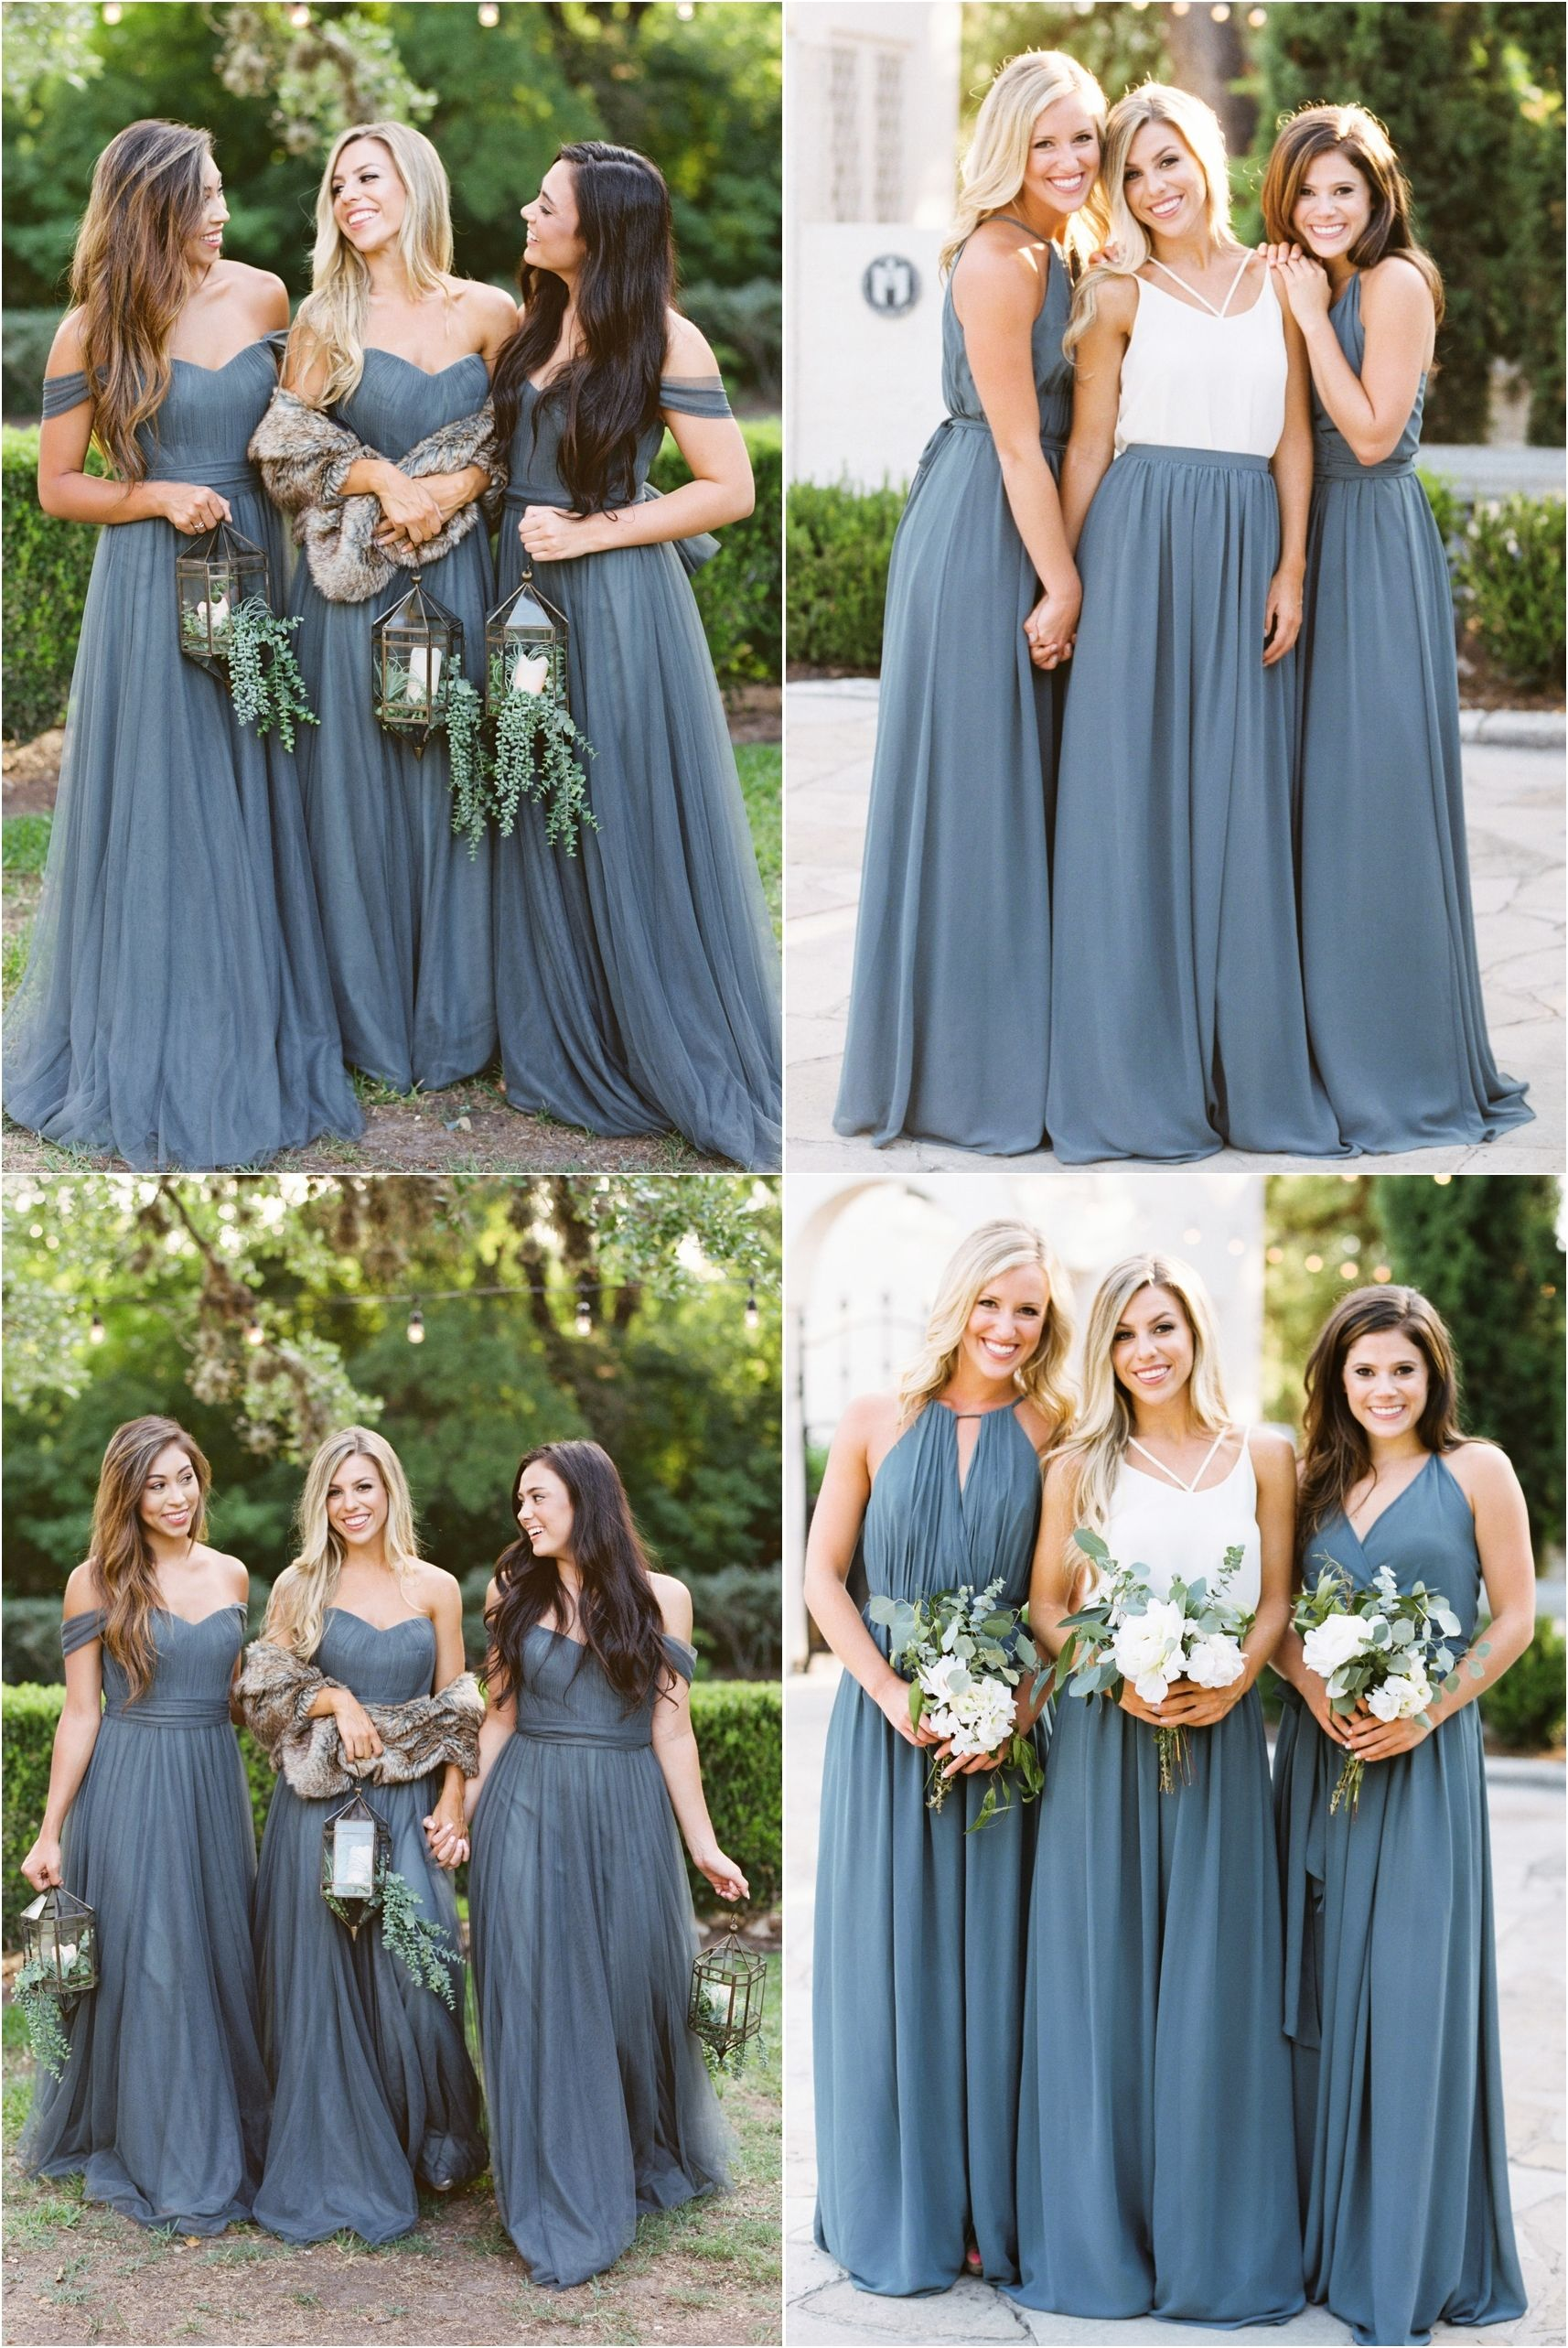 Top bridesmaid dress trends for bridesmaids pinterest